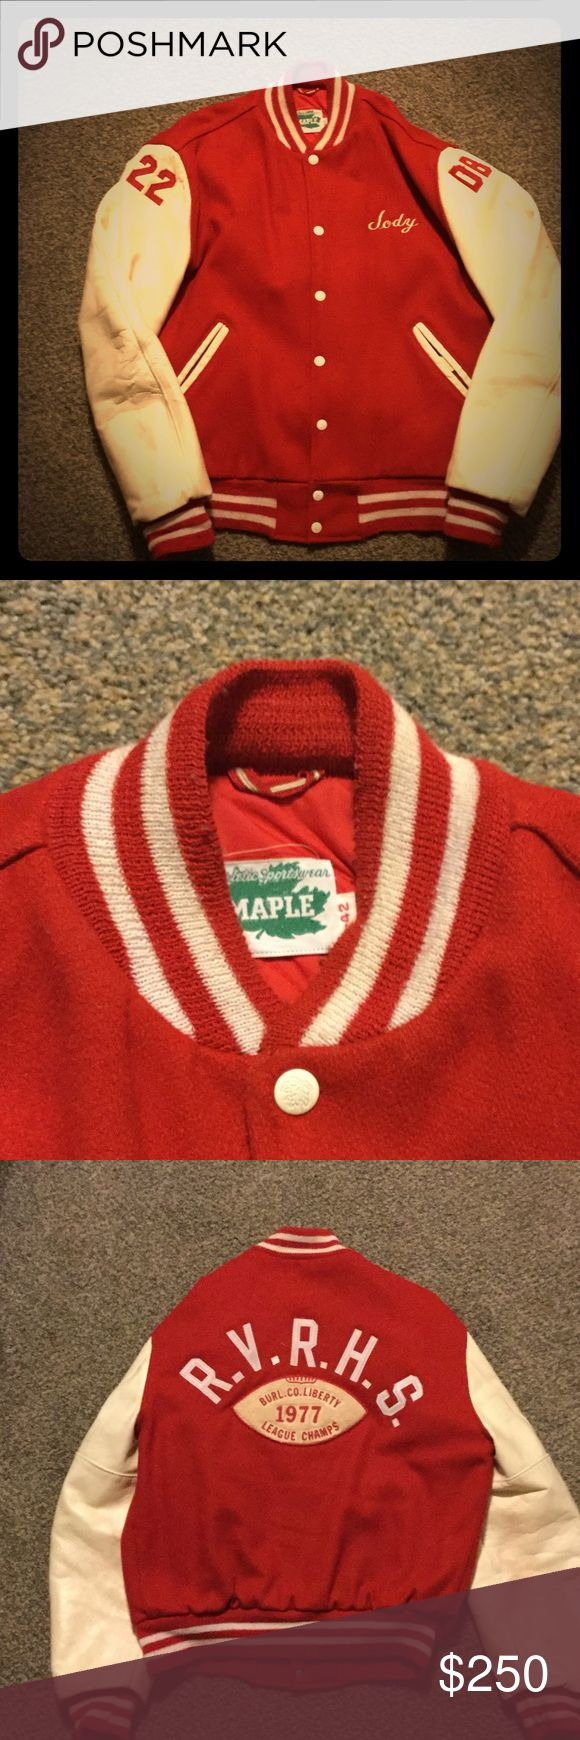 Vintage varsity jacket, circa 1978 1978 varsity football jacket, red with white leather sleeves. Great condition. No rips or holes, only thing is just 2 small black marks on the right torso area. Made by a company called maple.  maple Jackets & Coats Bomber & Varsity